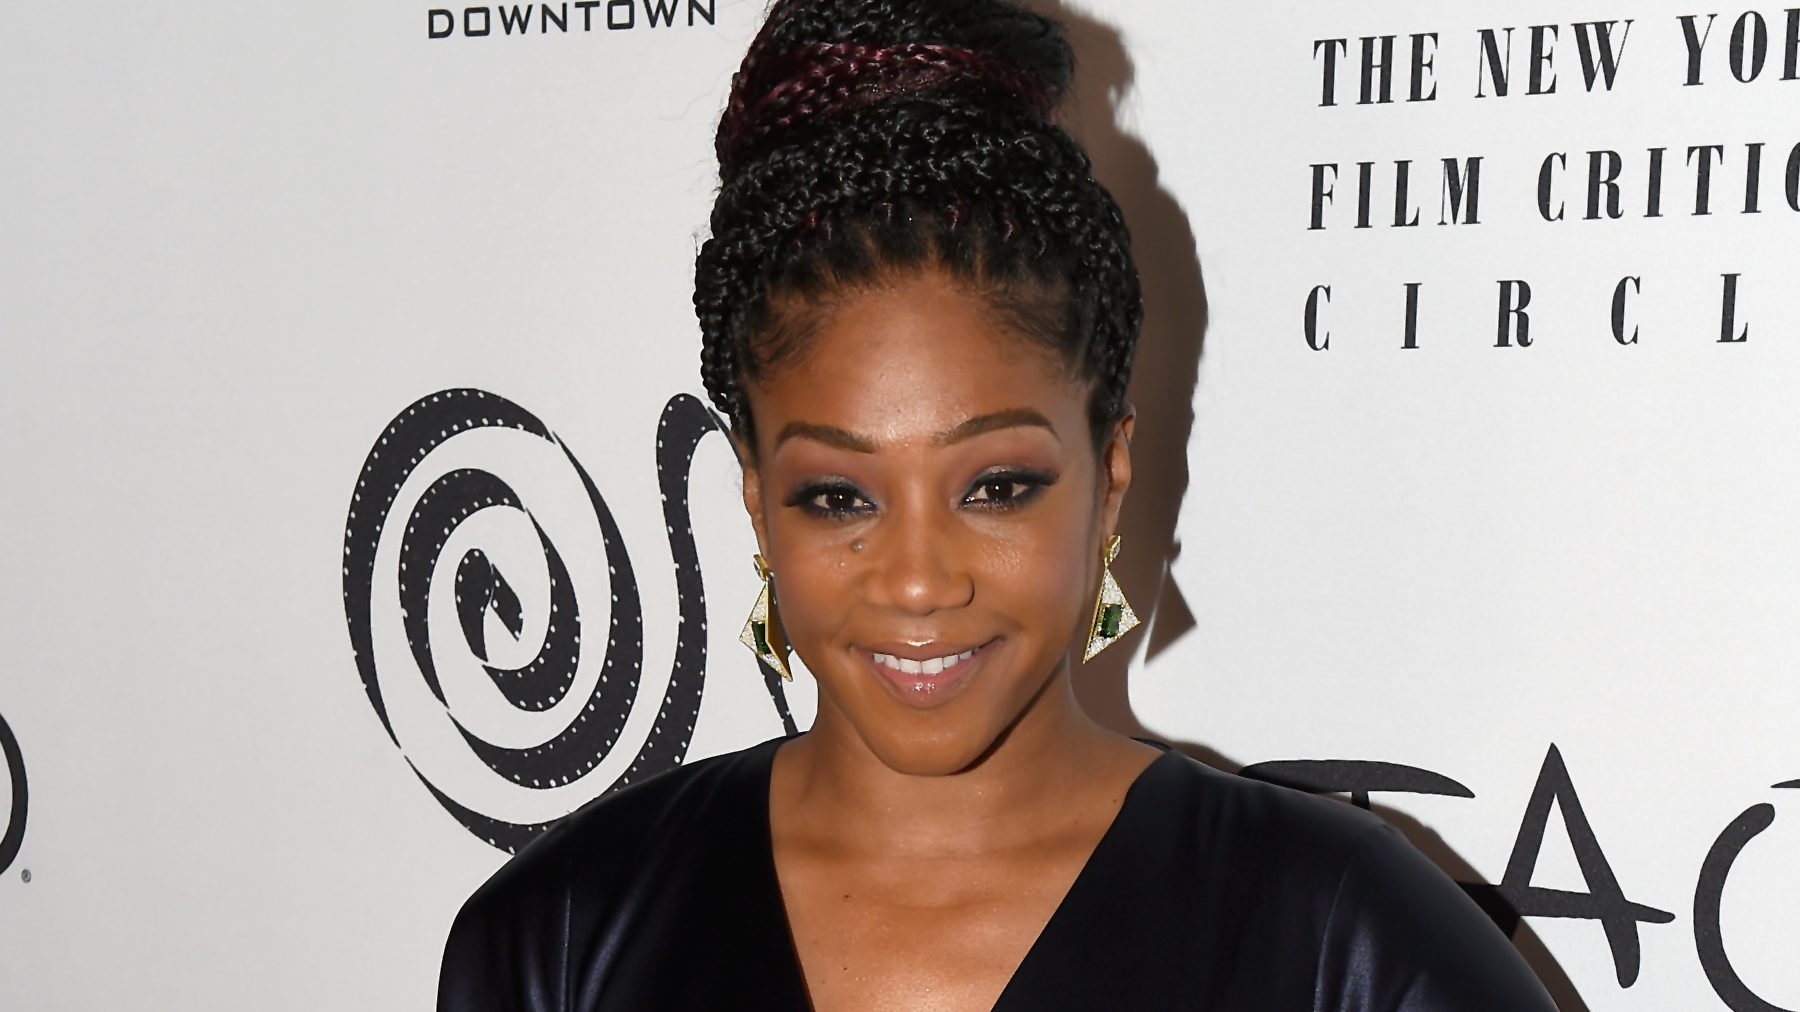 Tiffany Haddish Calls Out TMZ Reporter for Failing to Help with Luggage